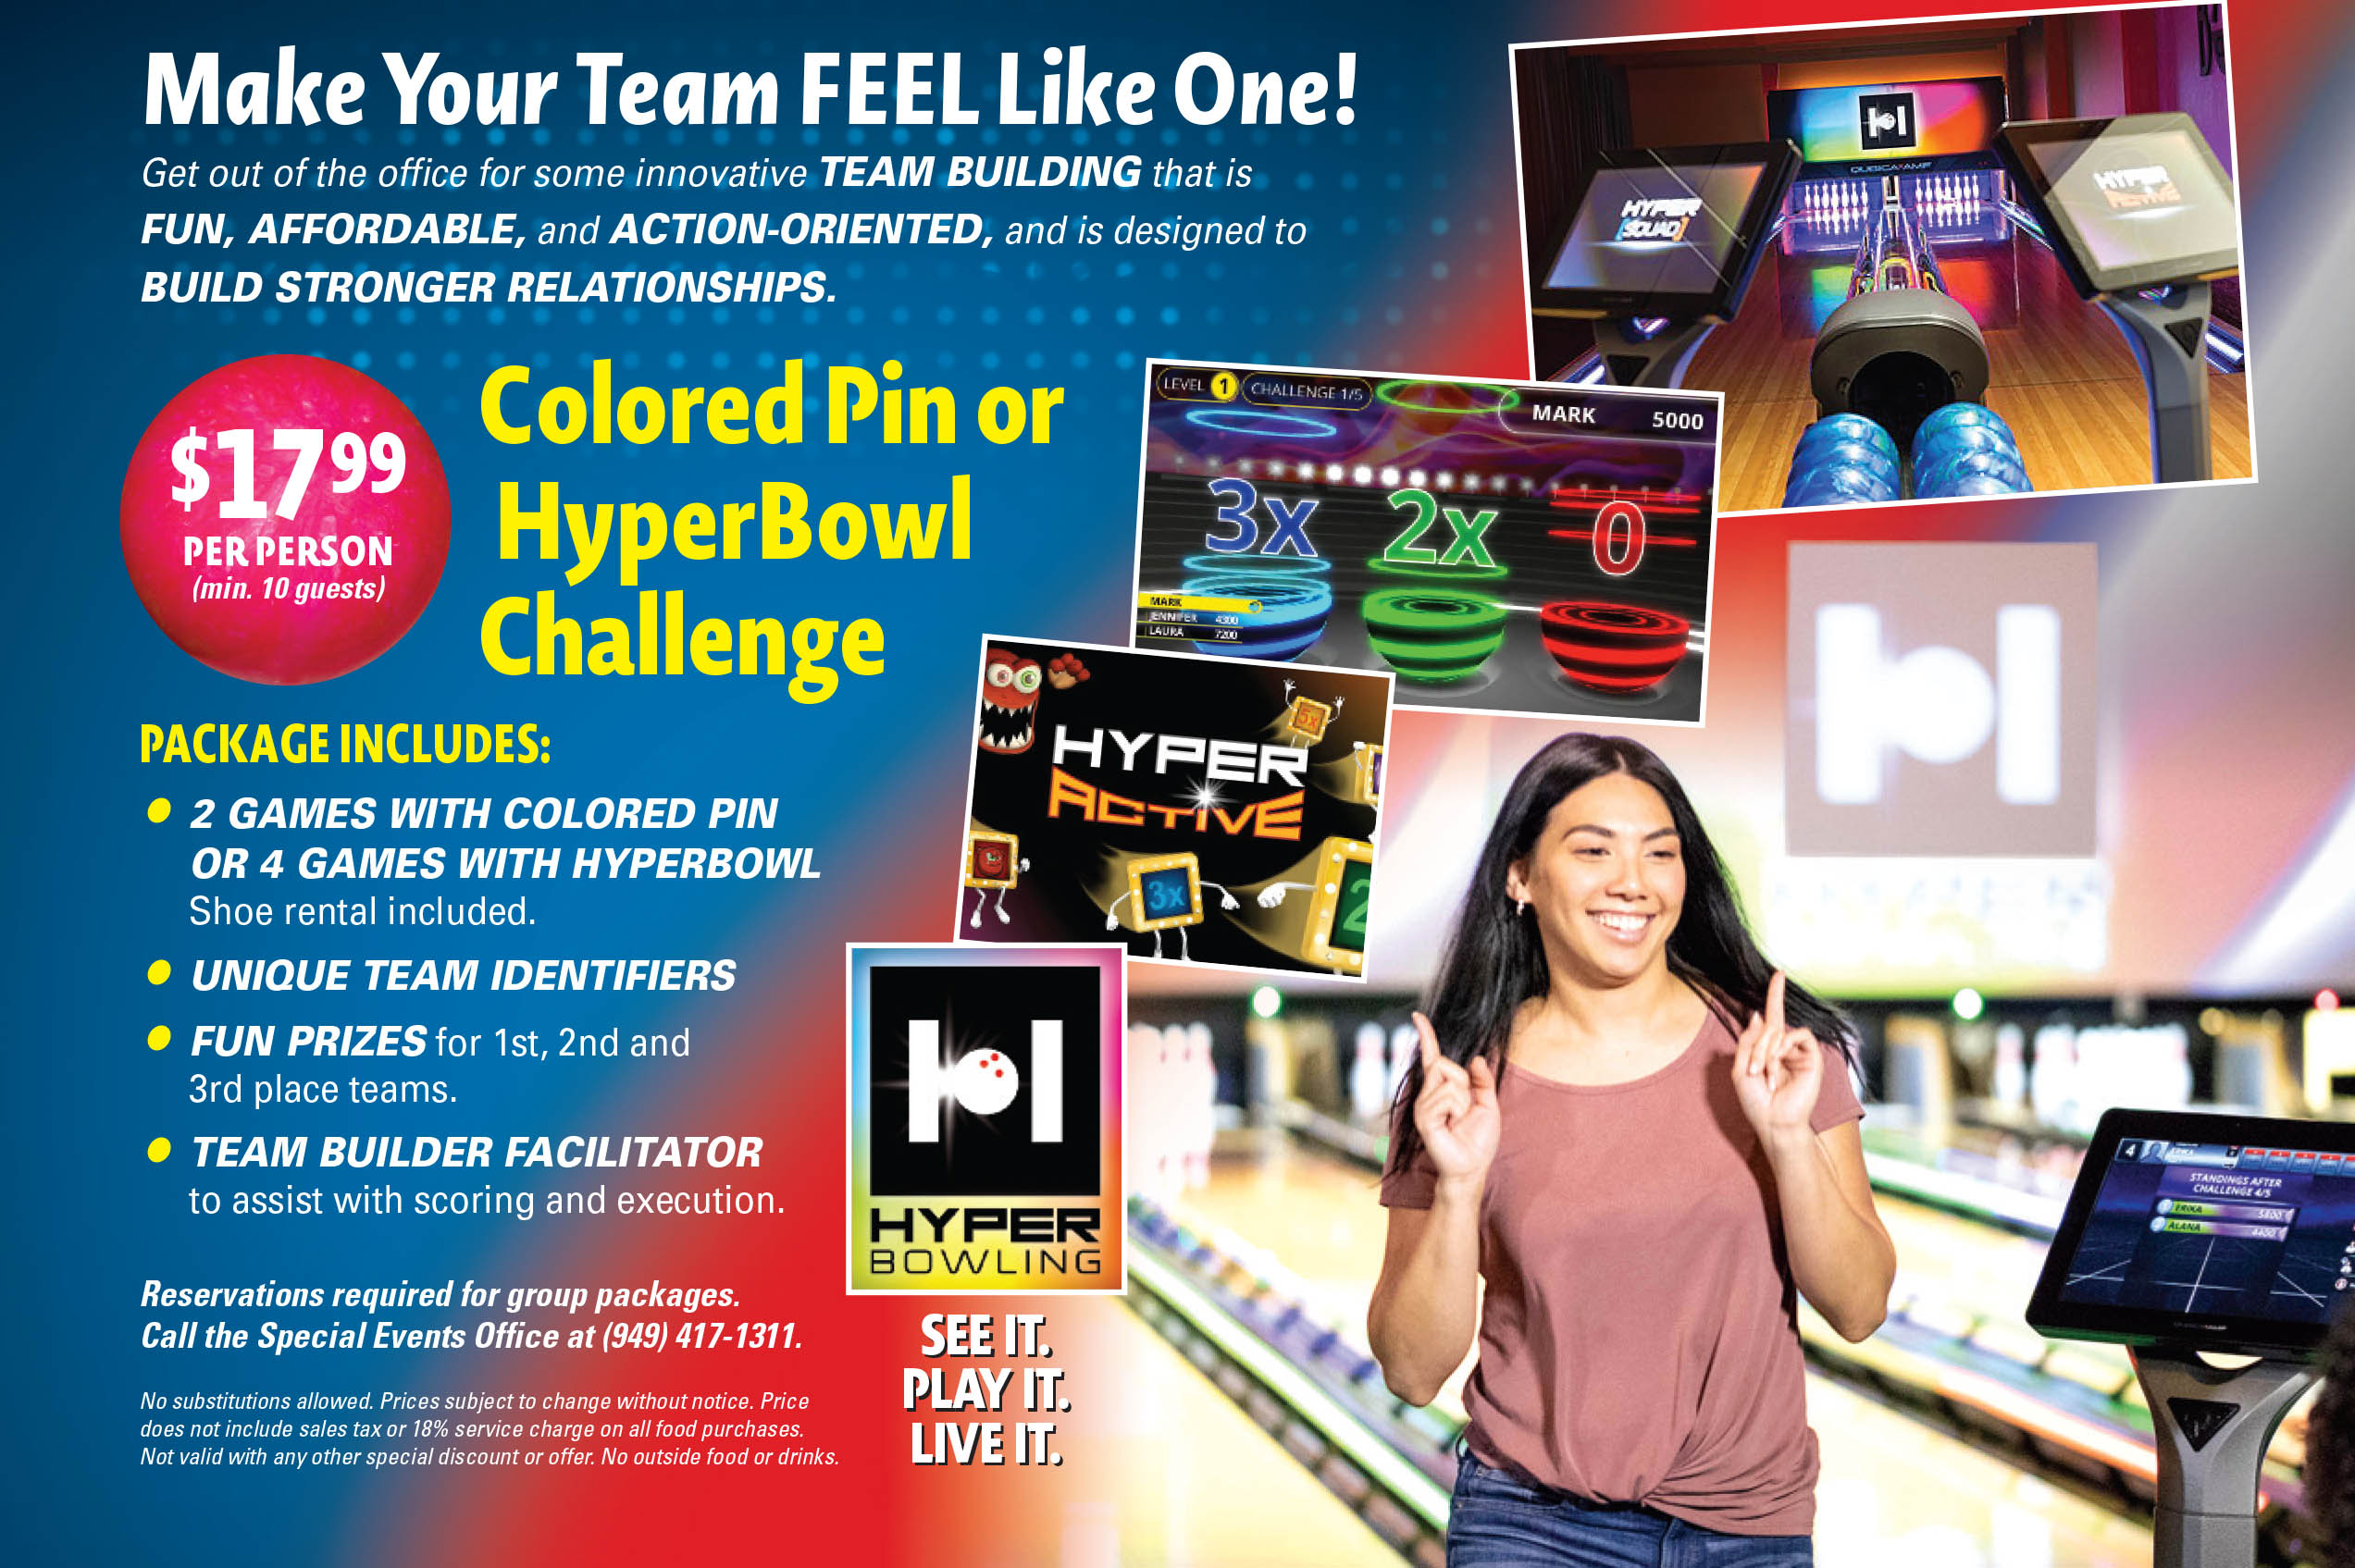 Ordinaire Colored Pin Or HyperBowling Challenge